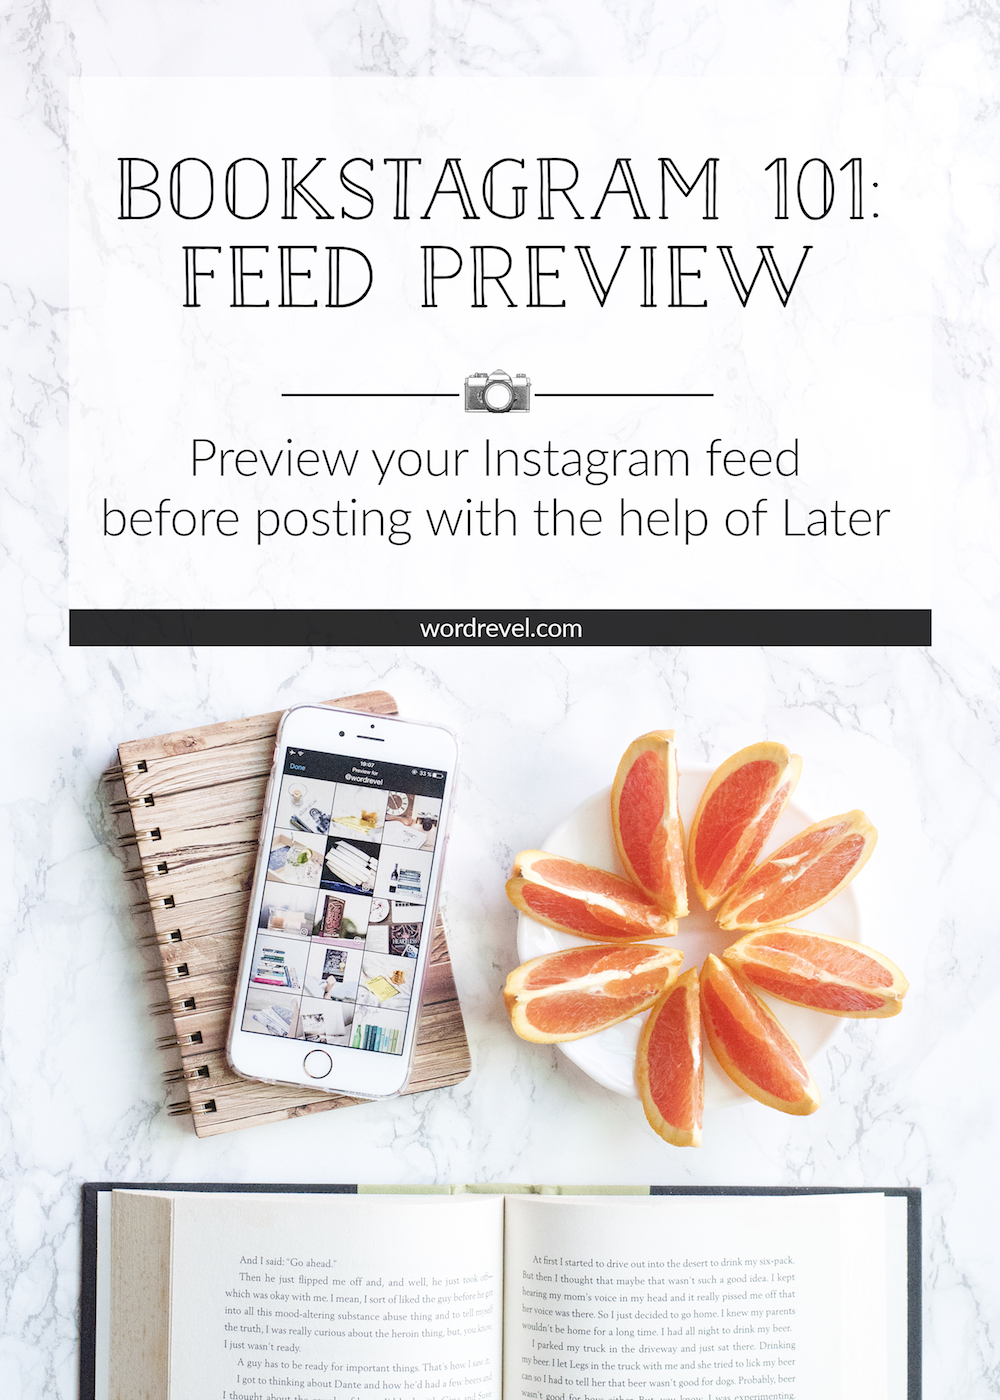 Bookstagram 101 - Feed Preview